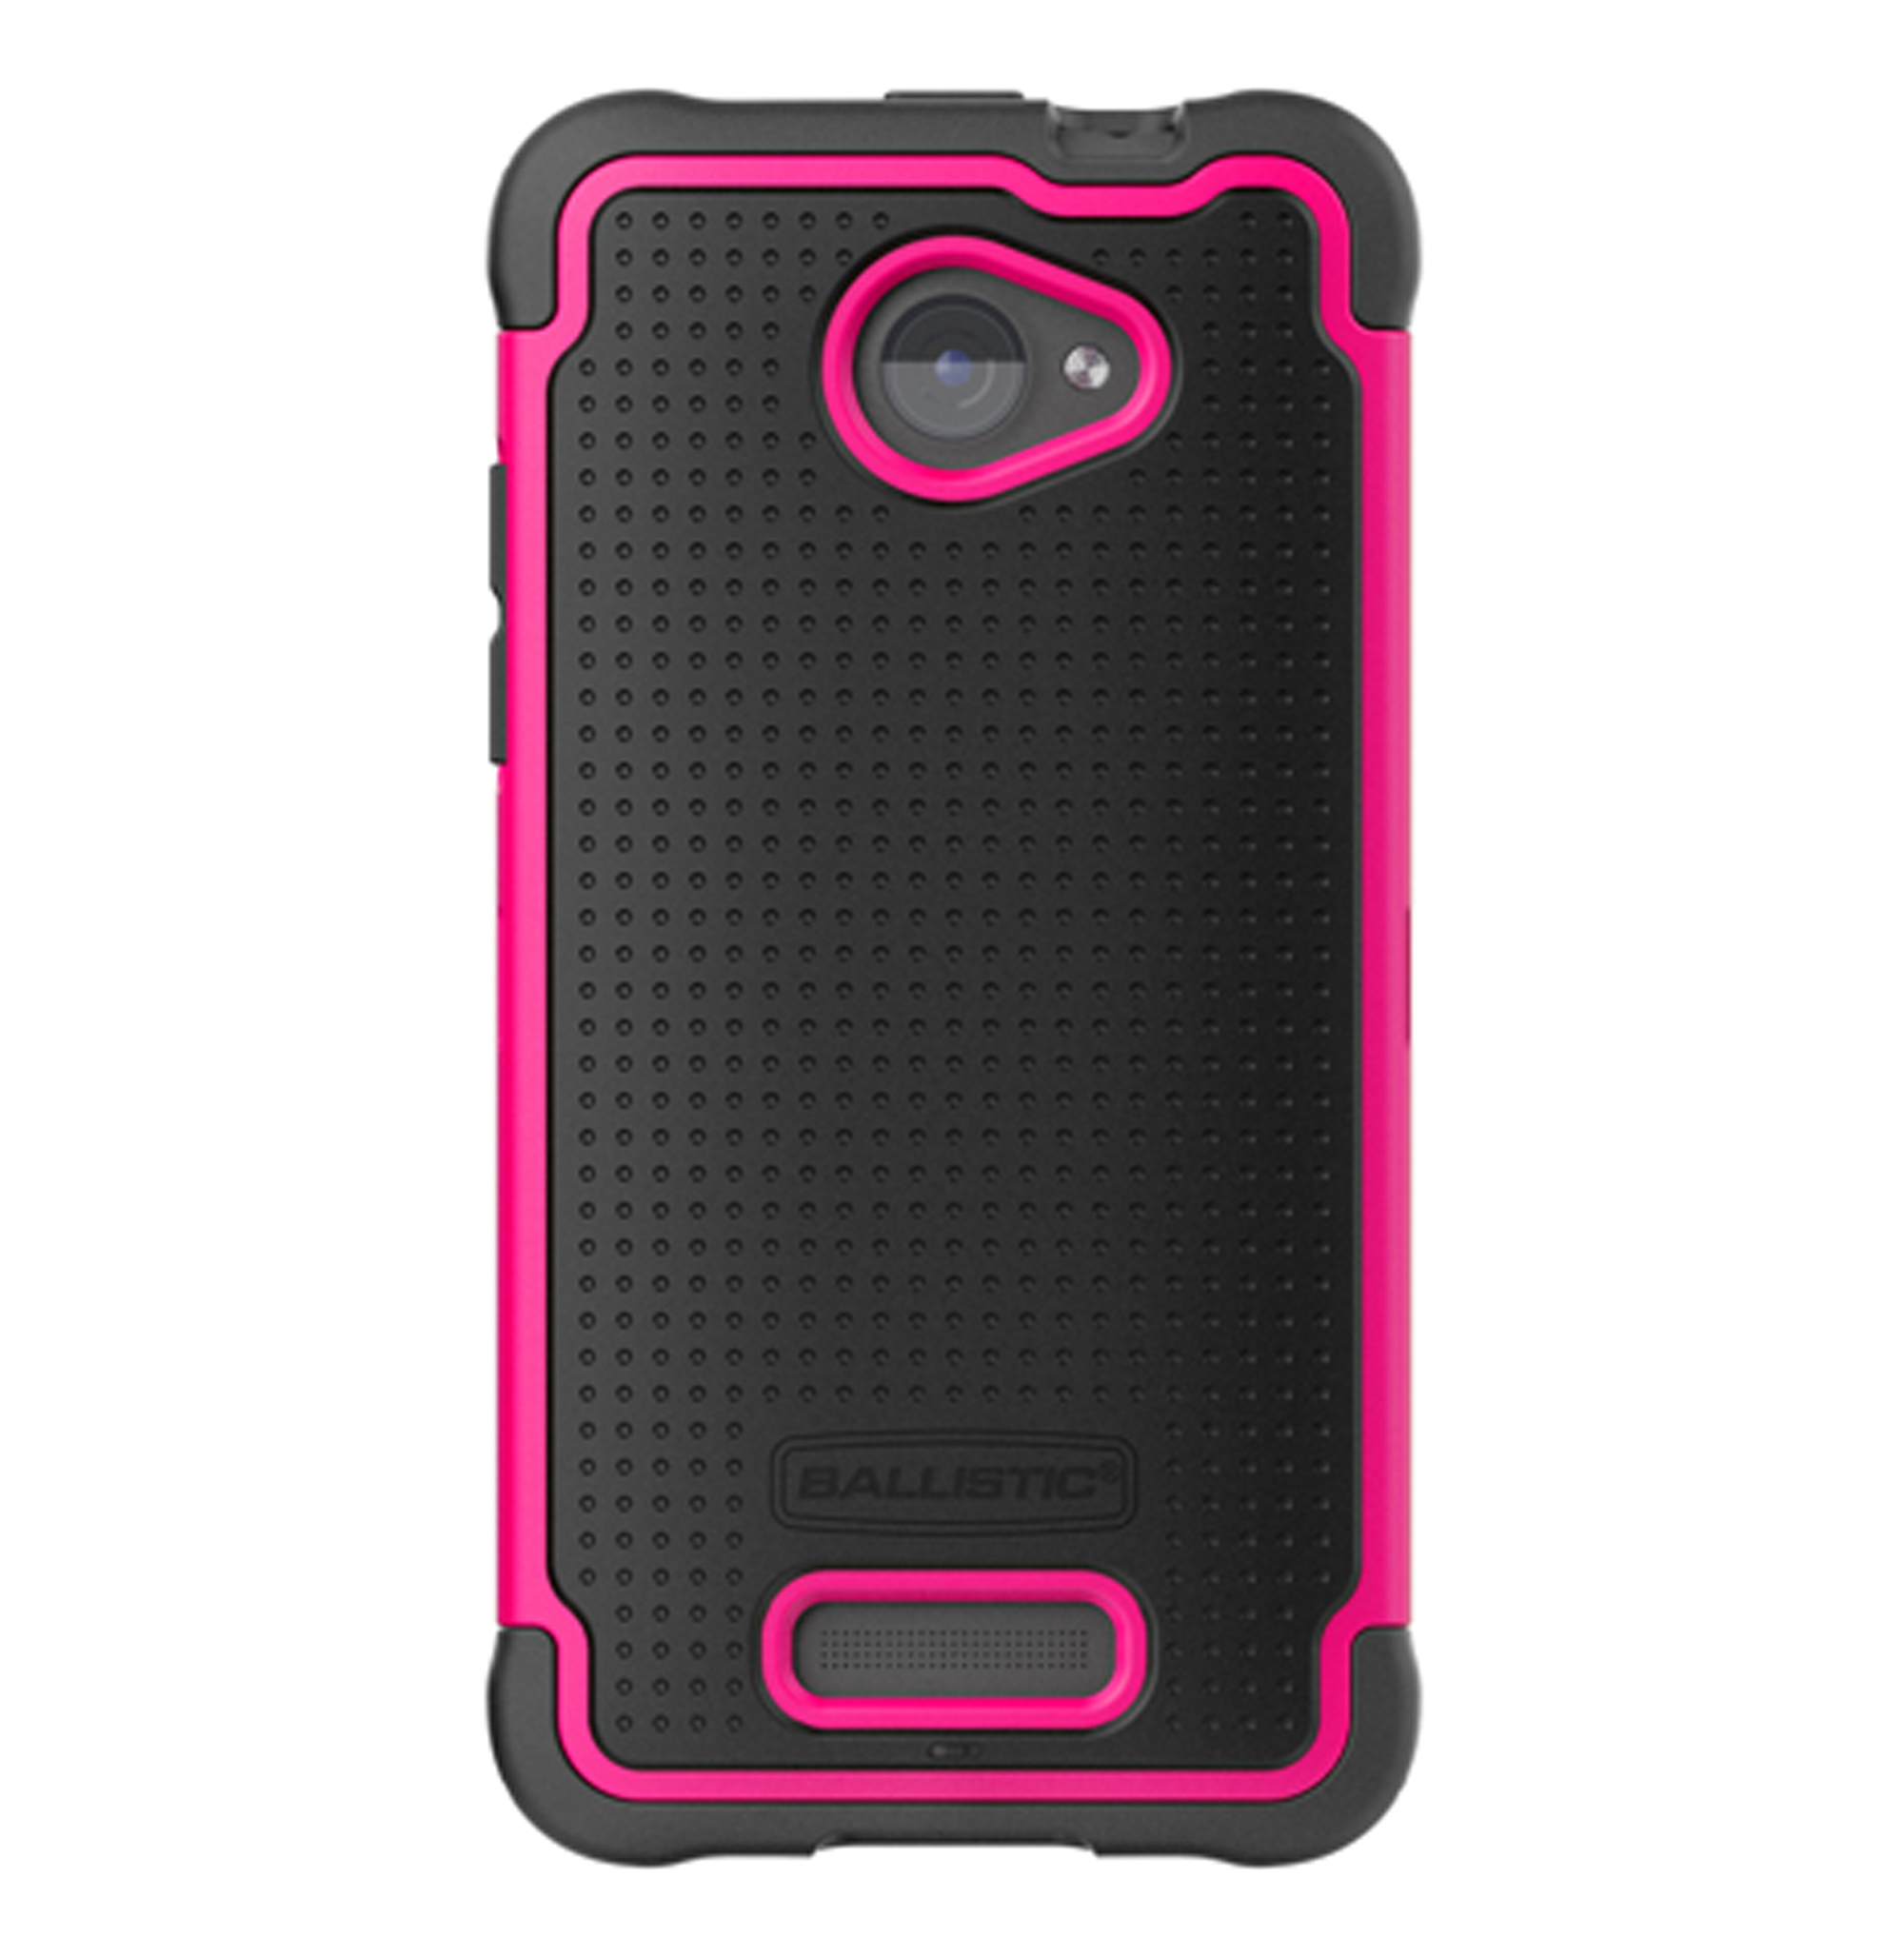 Ballistic SG1007-M365 Tough Shell Gel Case for HTC Droid DNA - Black/Hot Pink